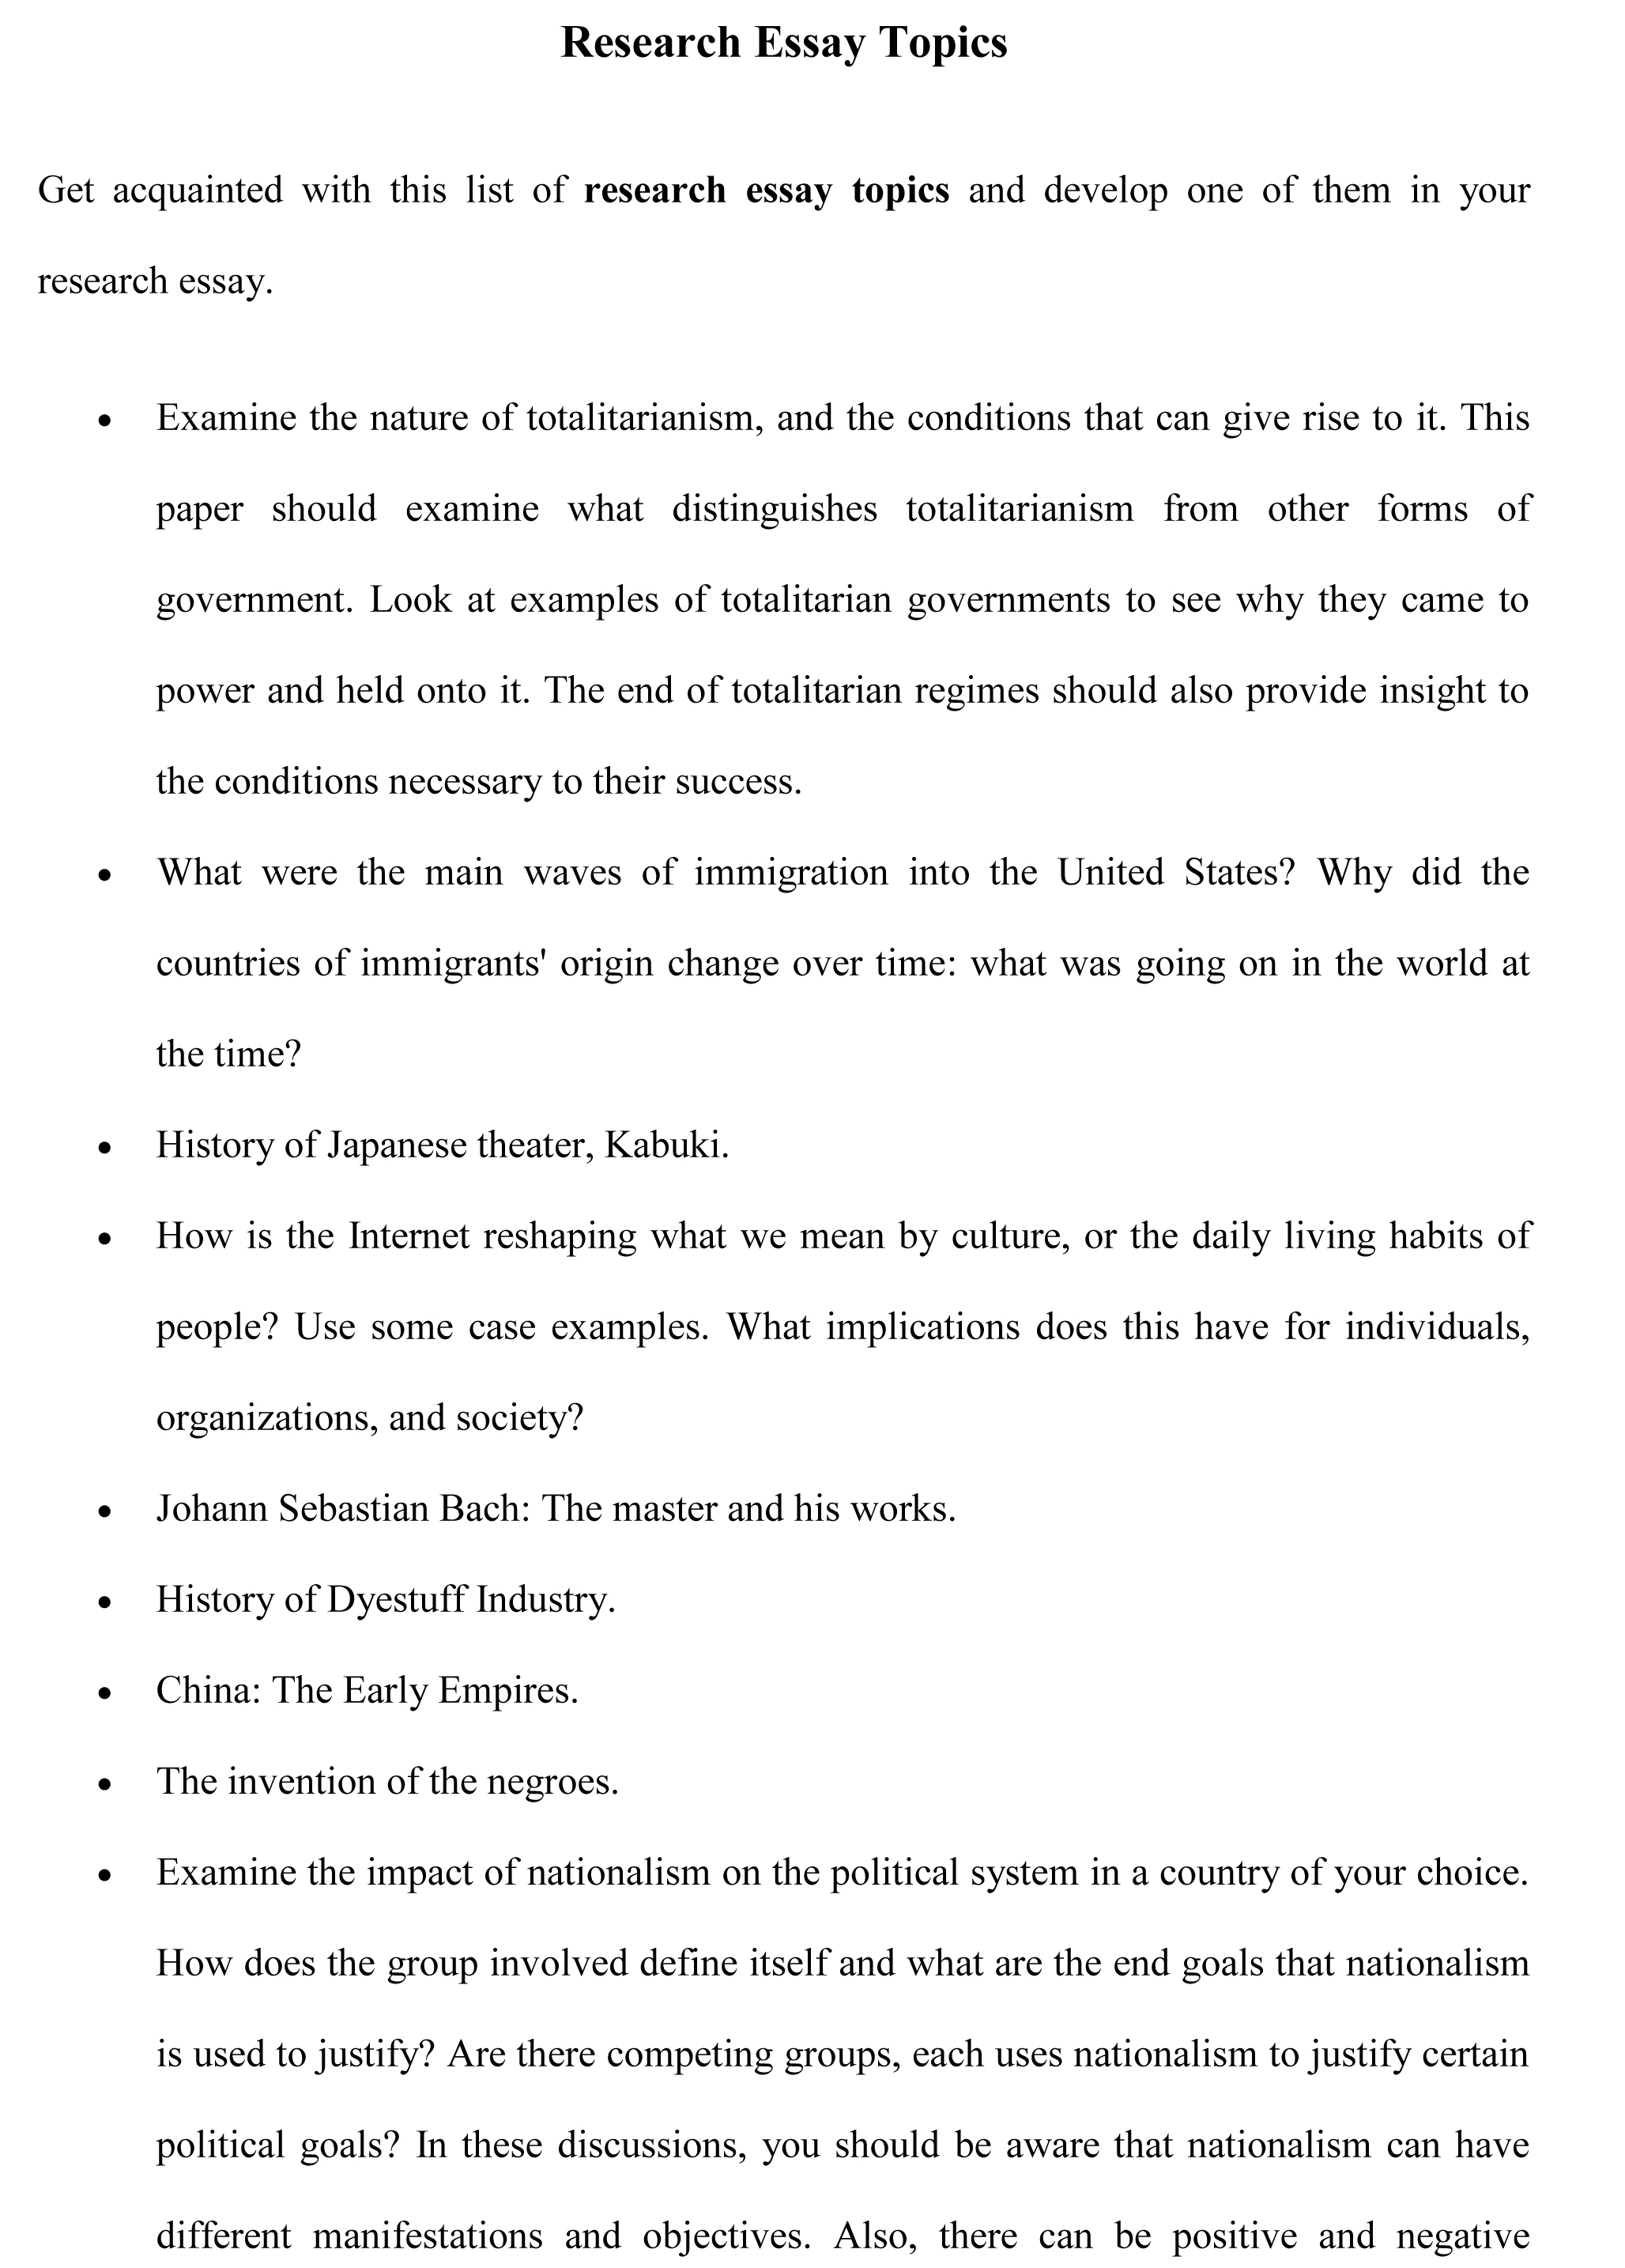 005 Research Paper Business Topics Essay Striking Ethics Law And Full